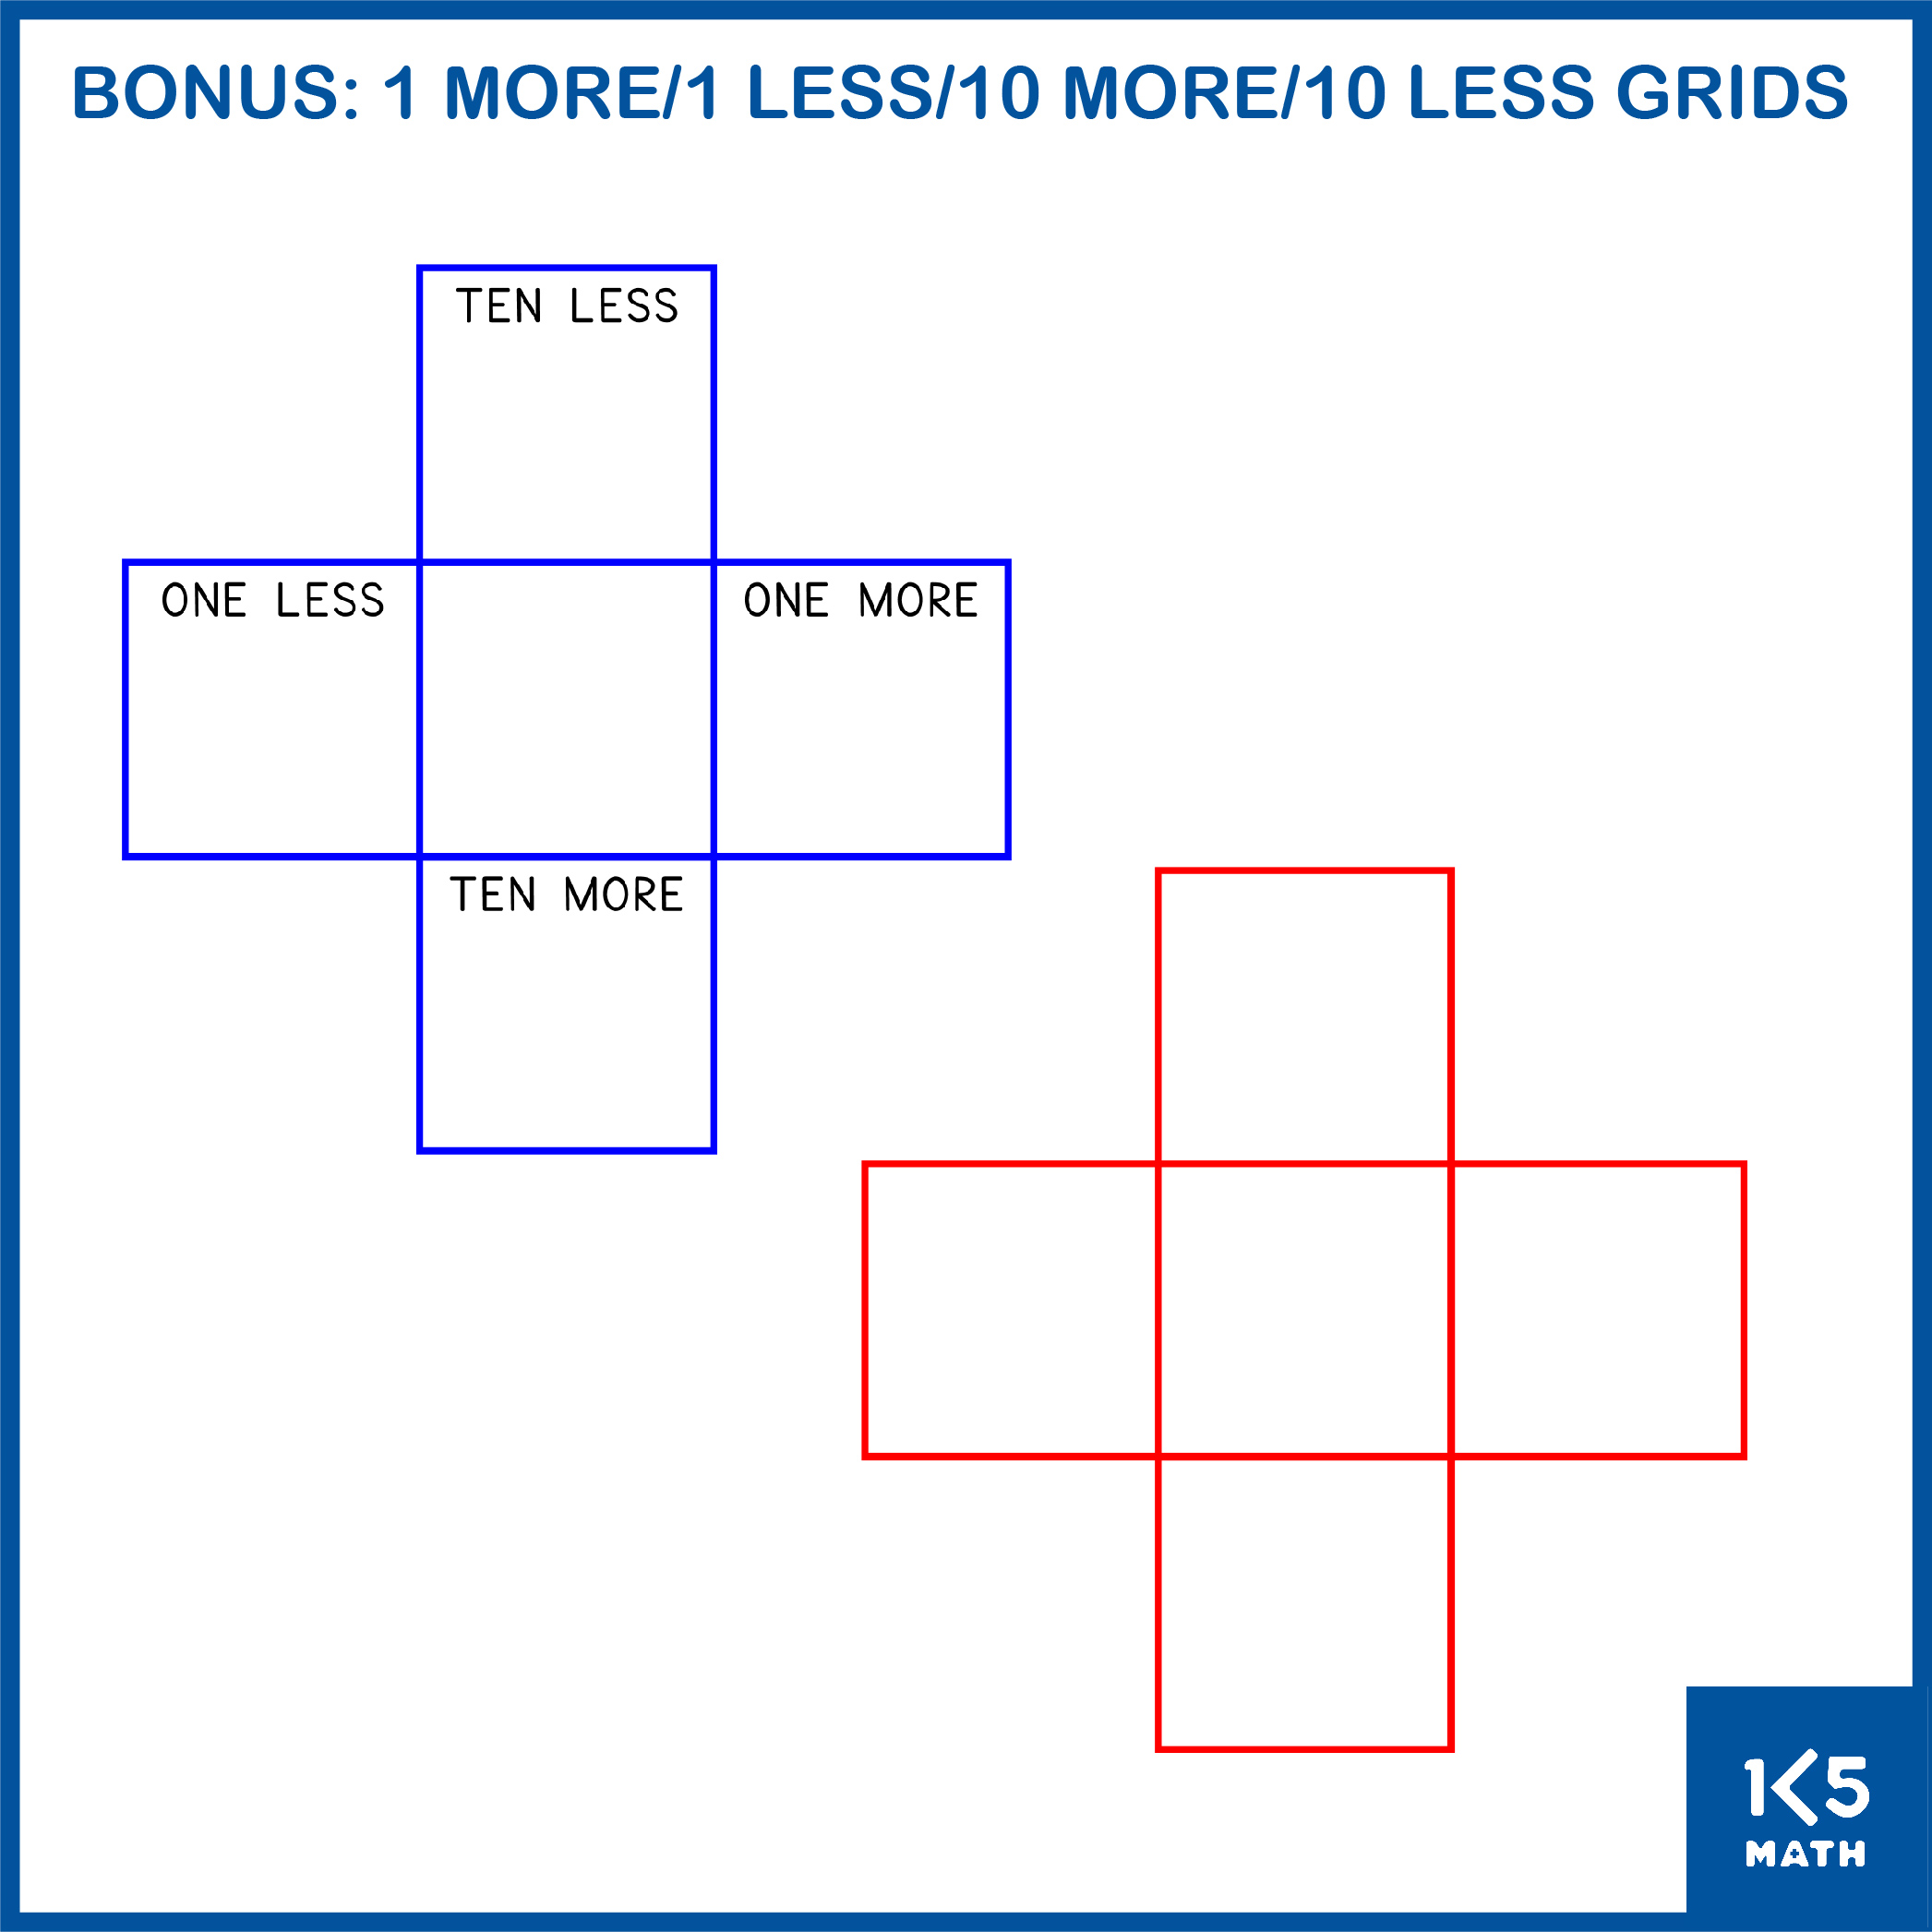 One More/One Less/Ten More/Ten Less Grids